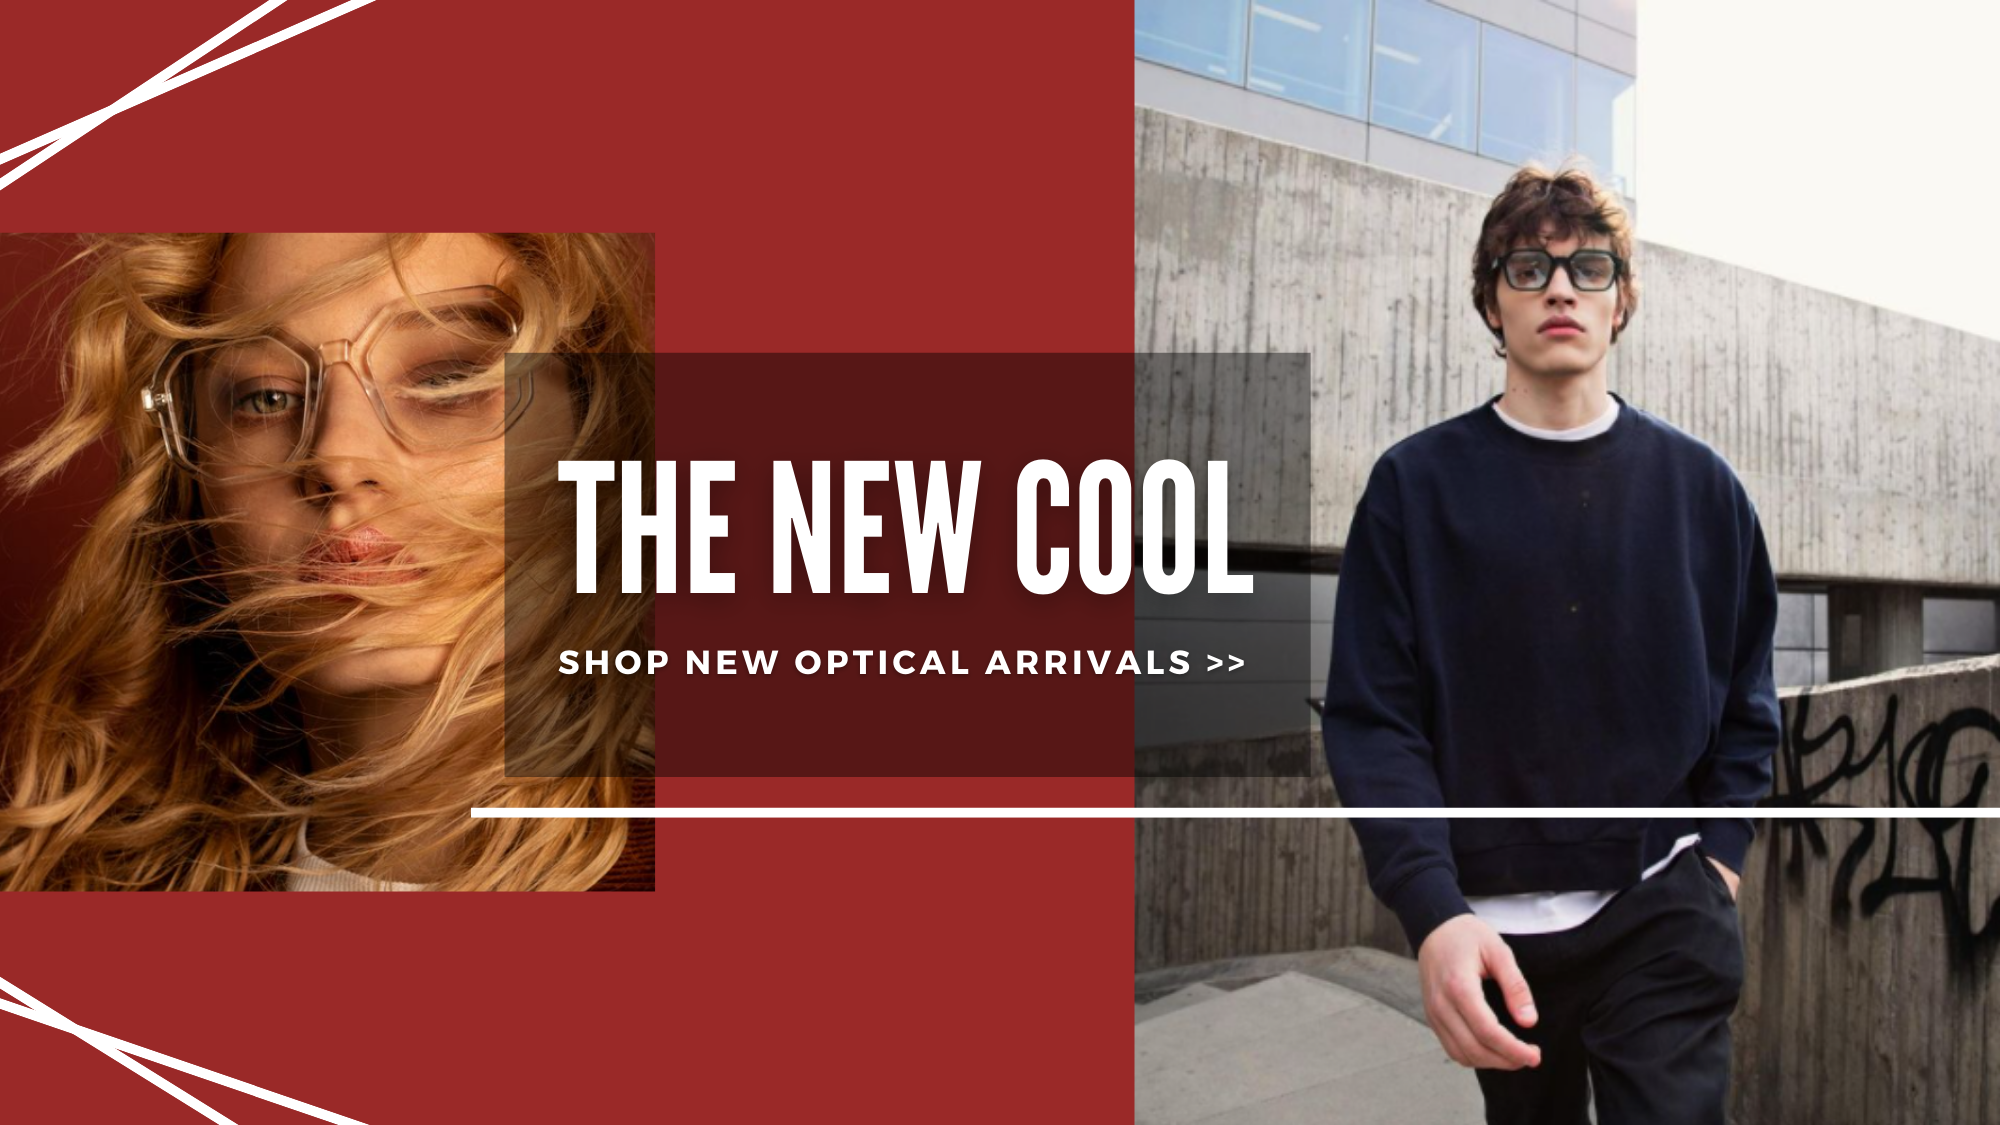 the new cool, shop new optical arrivals